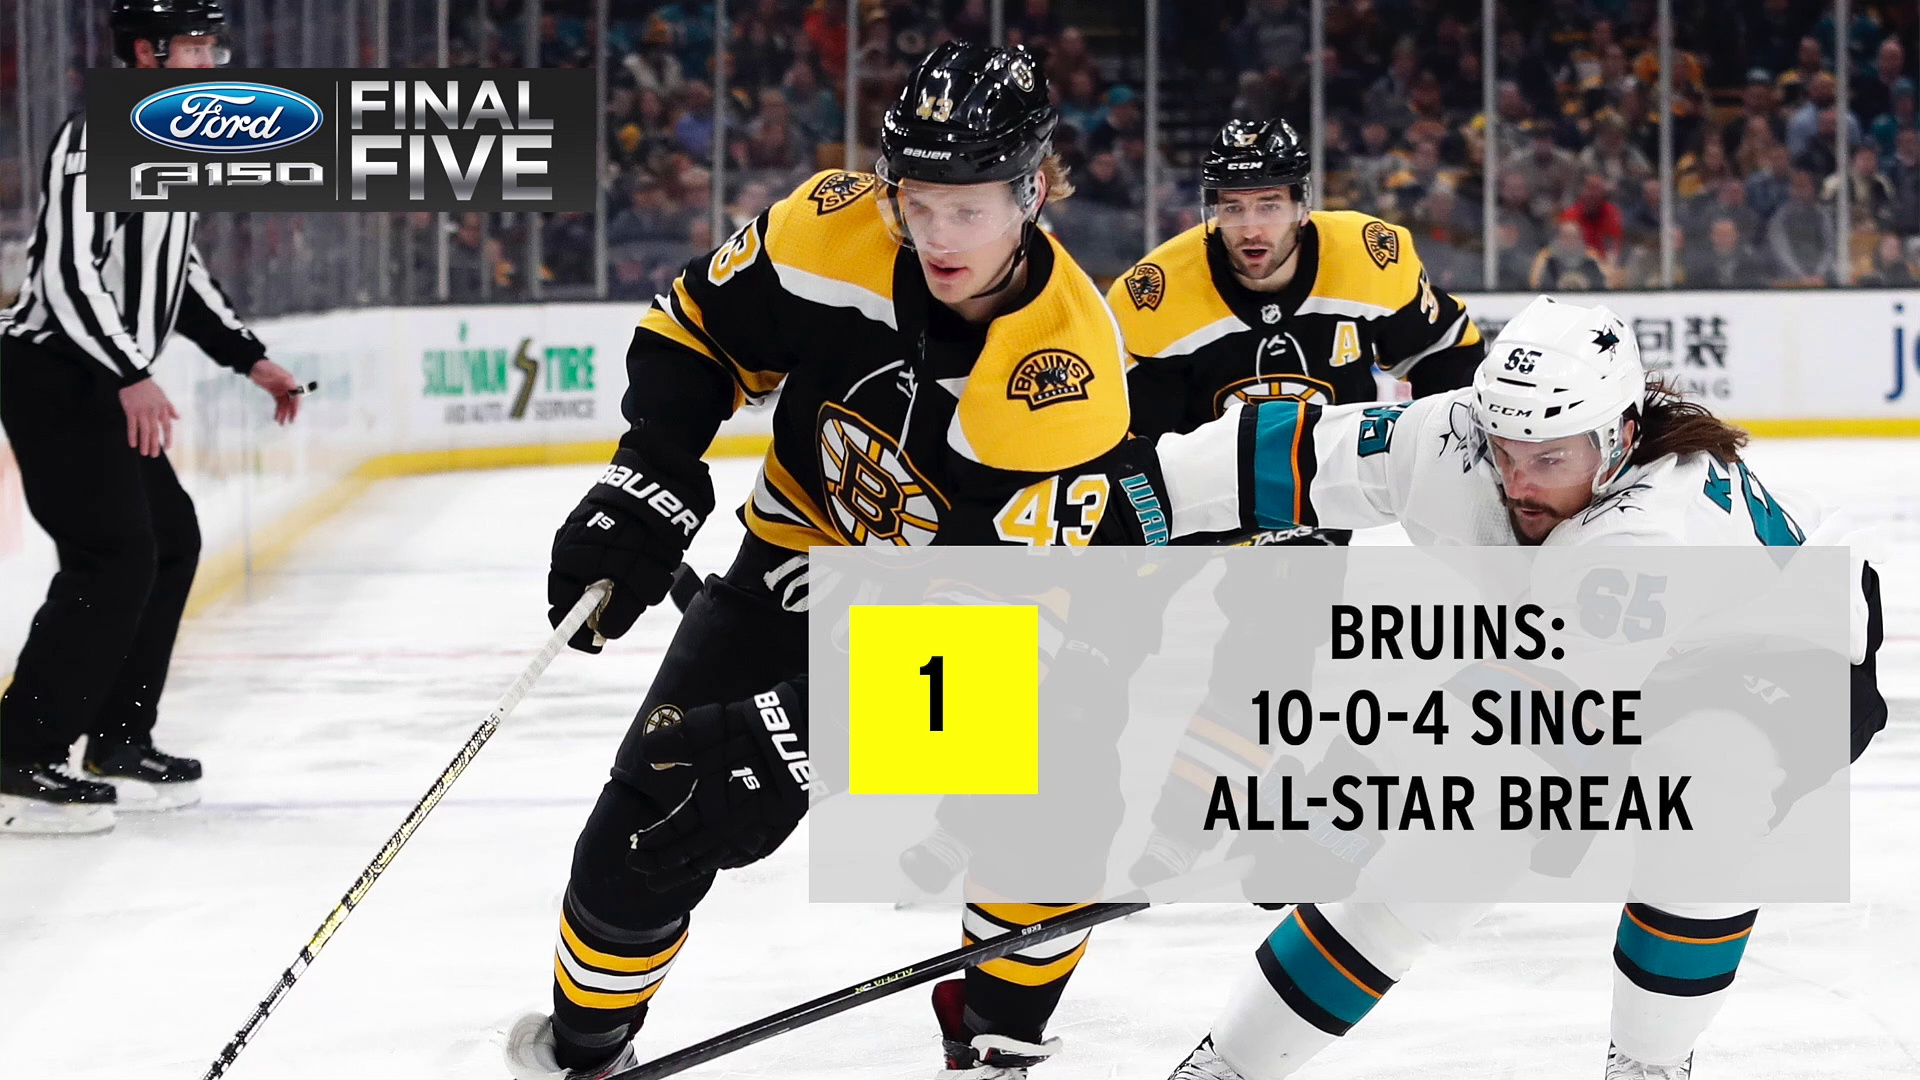 Ford Final Five Facts: Bruins Extend Point Streak After Sinking Sharks